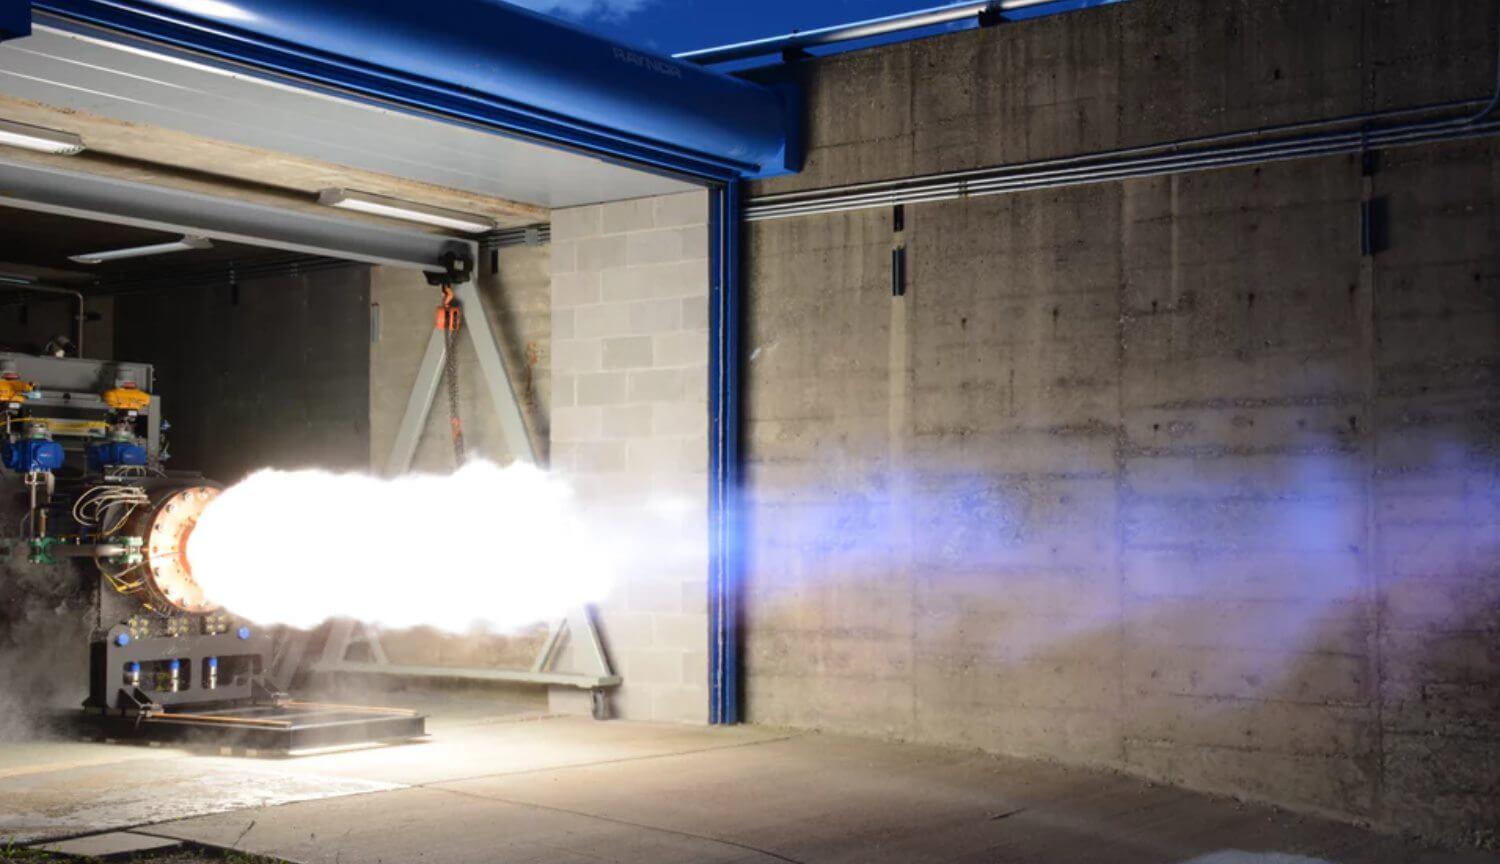 Test firing of the spacecraft engine, the Dream Chaser completed successfully